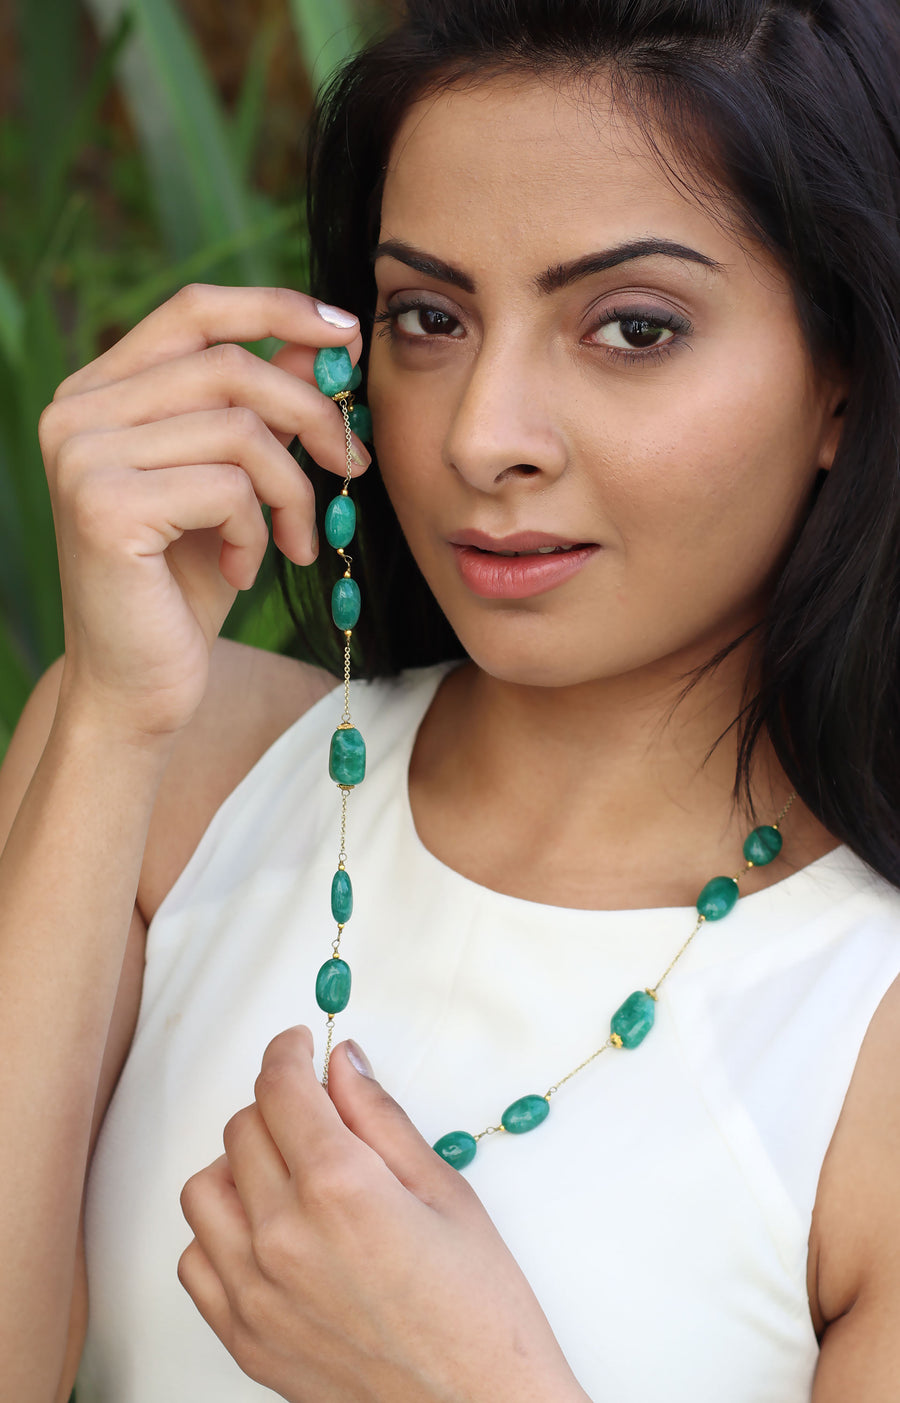 Green  Quartz  Necklace in 925 Sterling Silver Chain